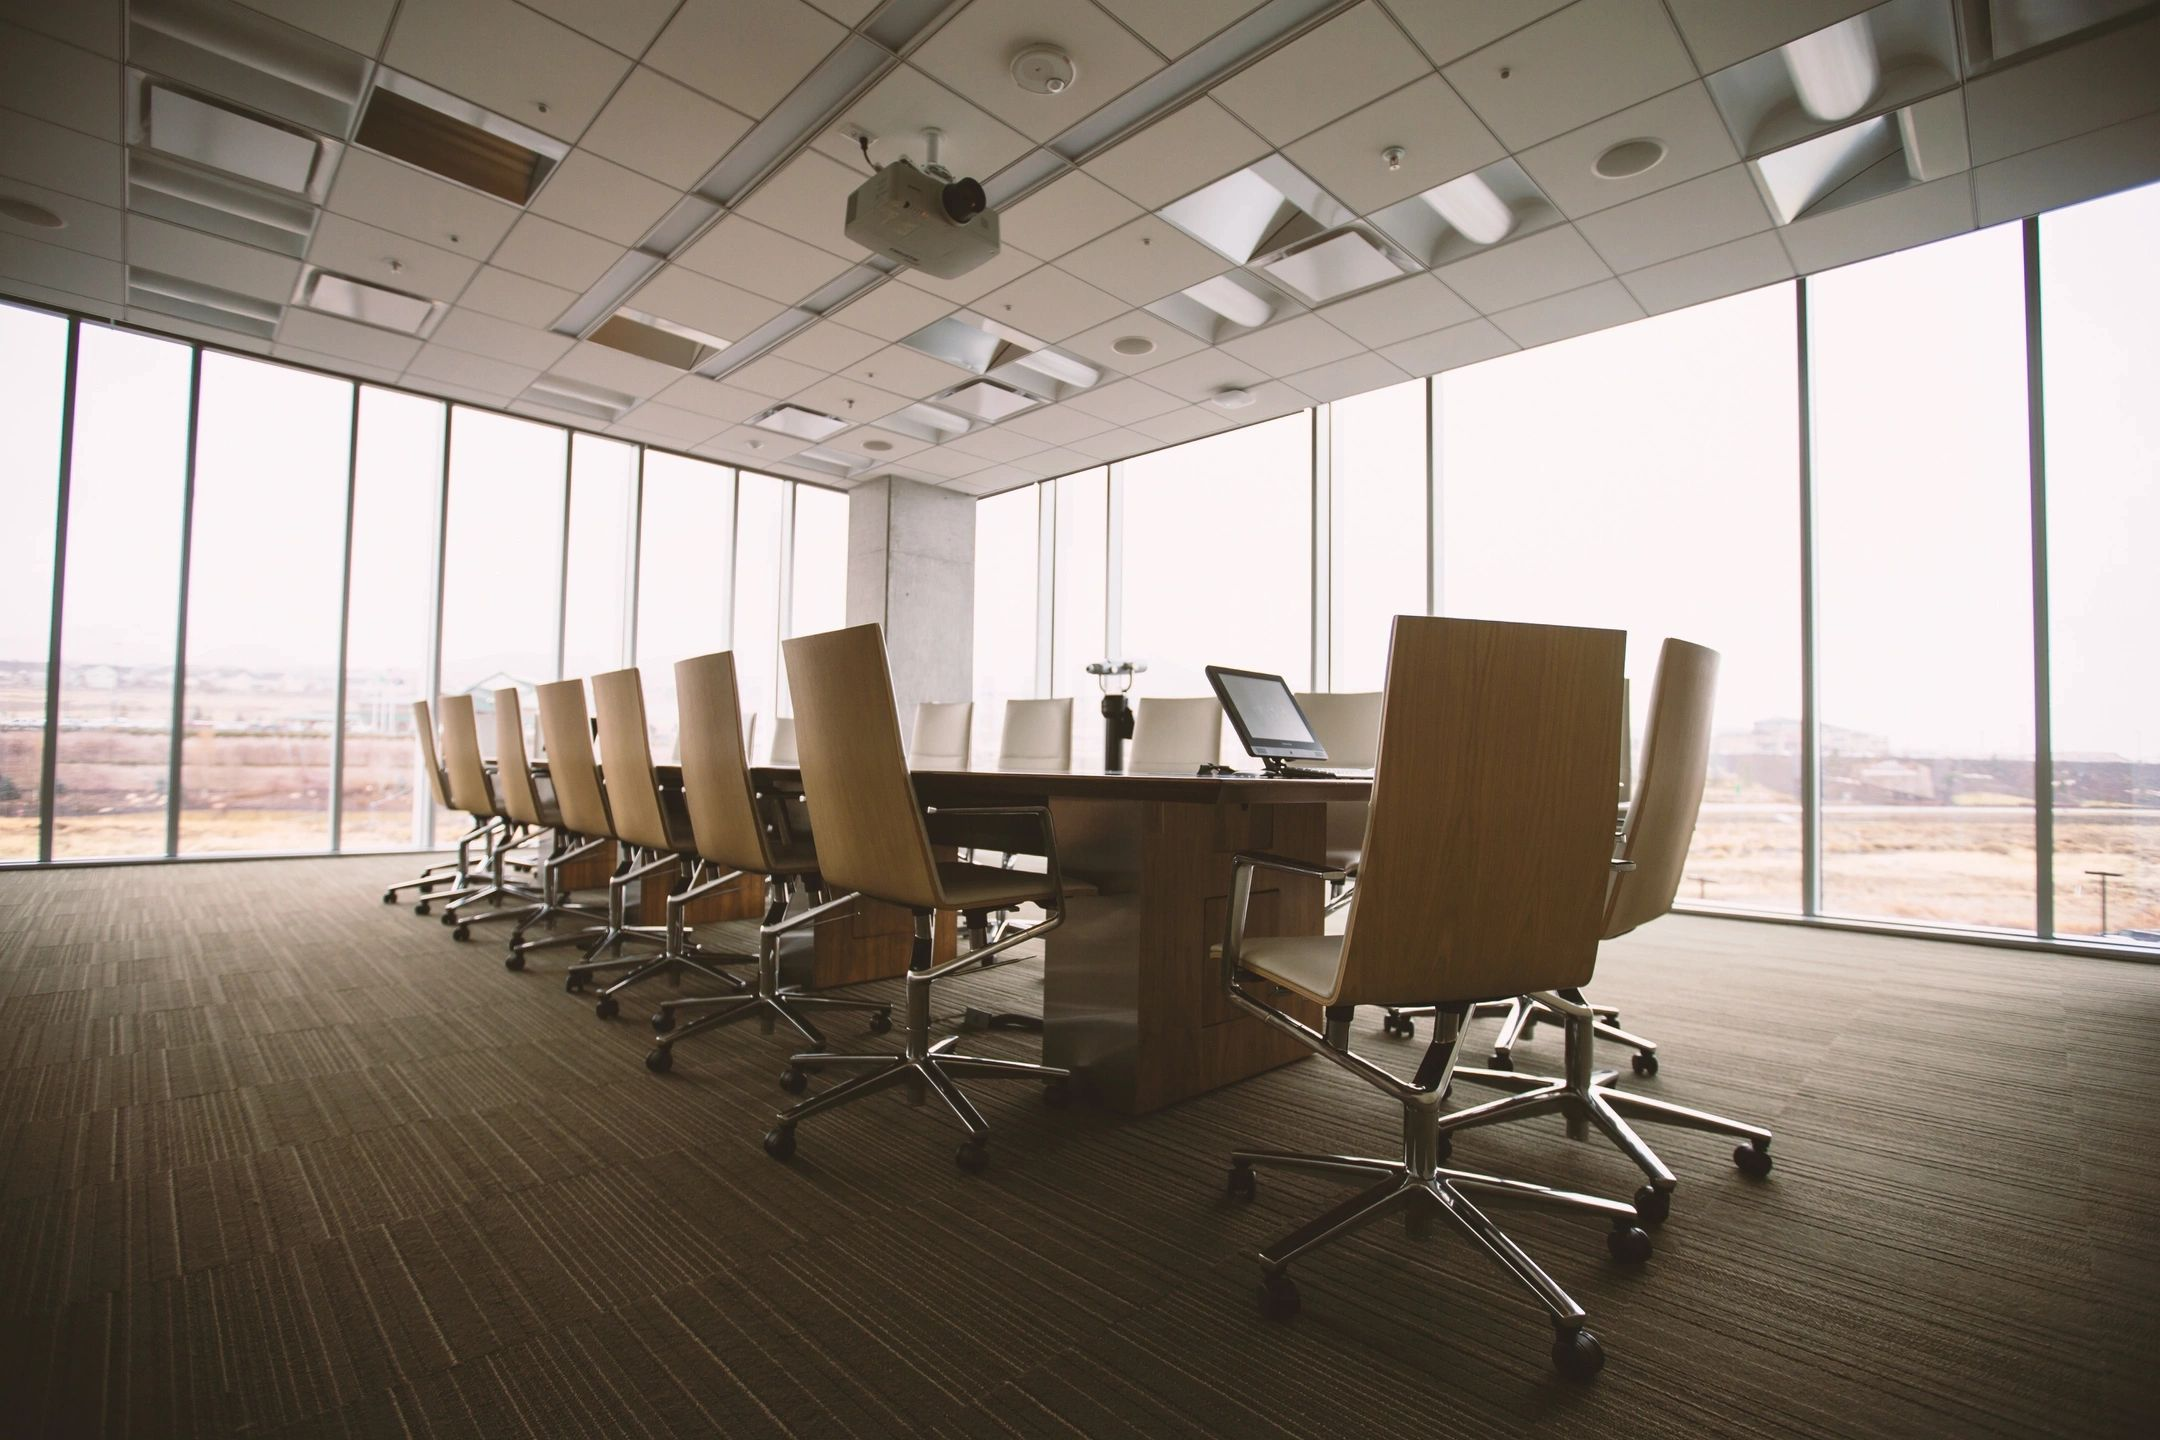 We offer affordable office cleaning services in the Toronto and Greater Toronto Area. As a result, helping businesses maintain their office with daily, weekly and monthly cleanups.